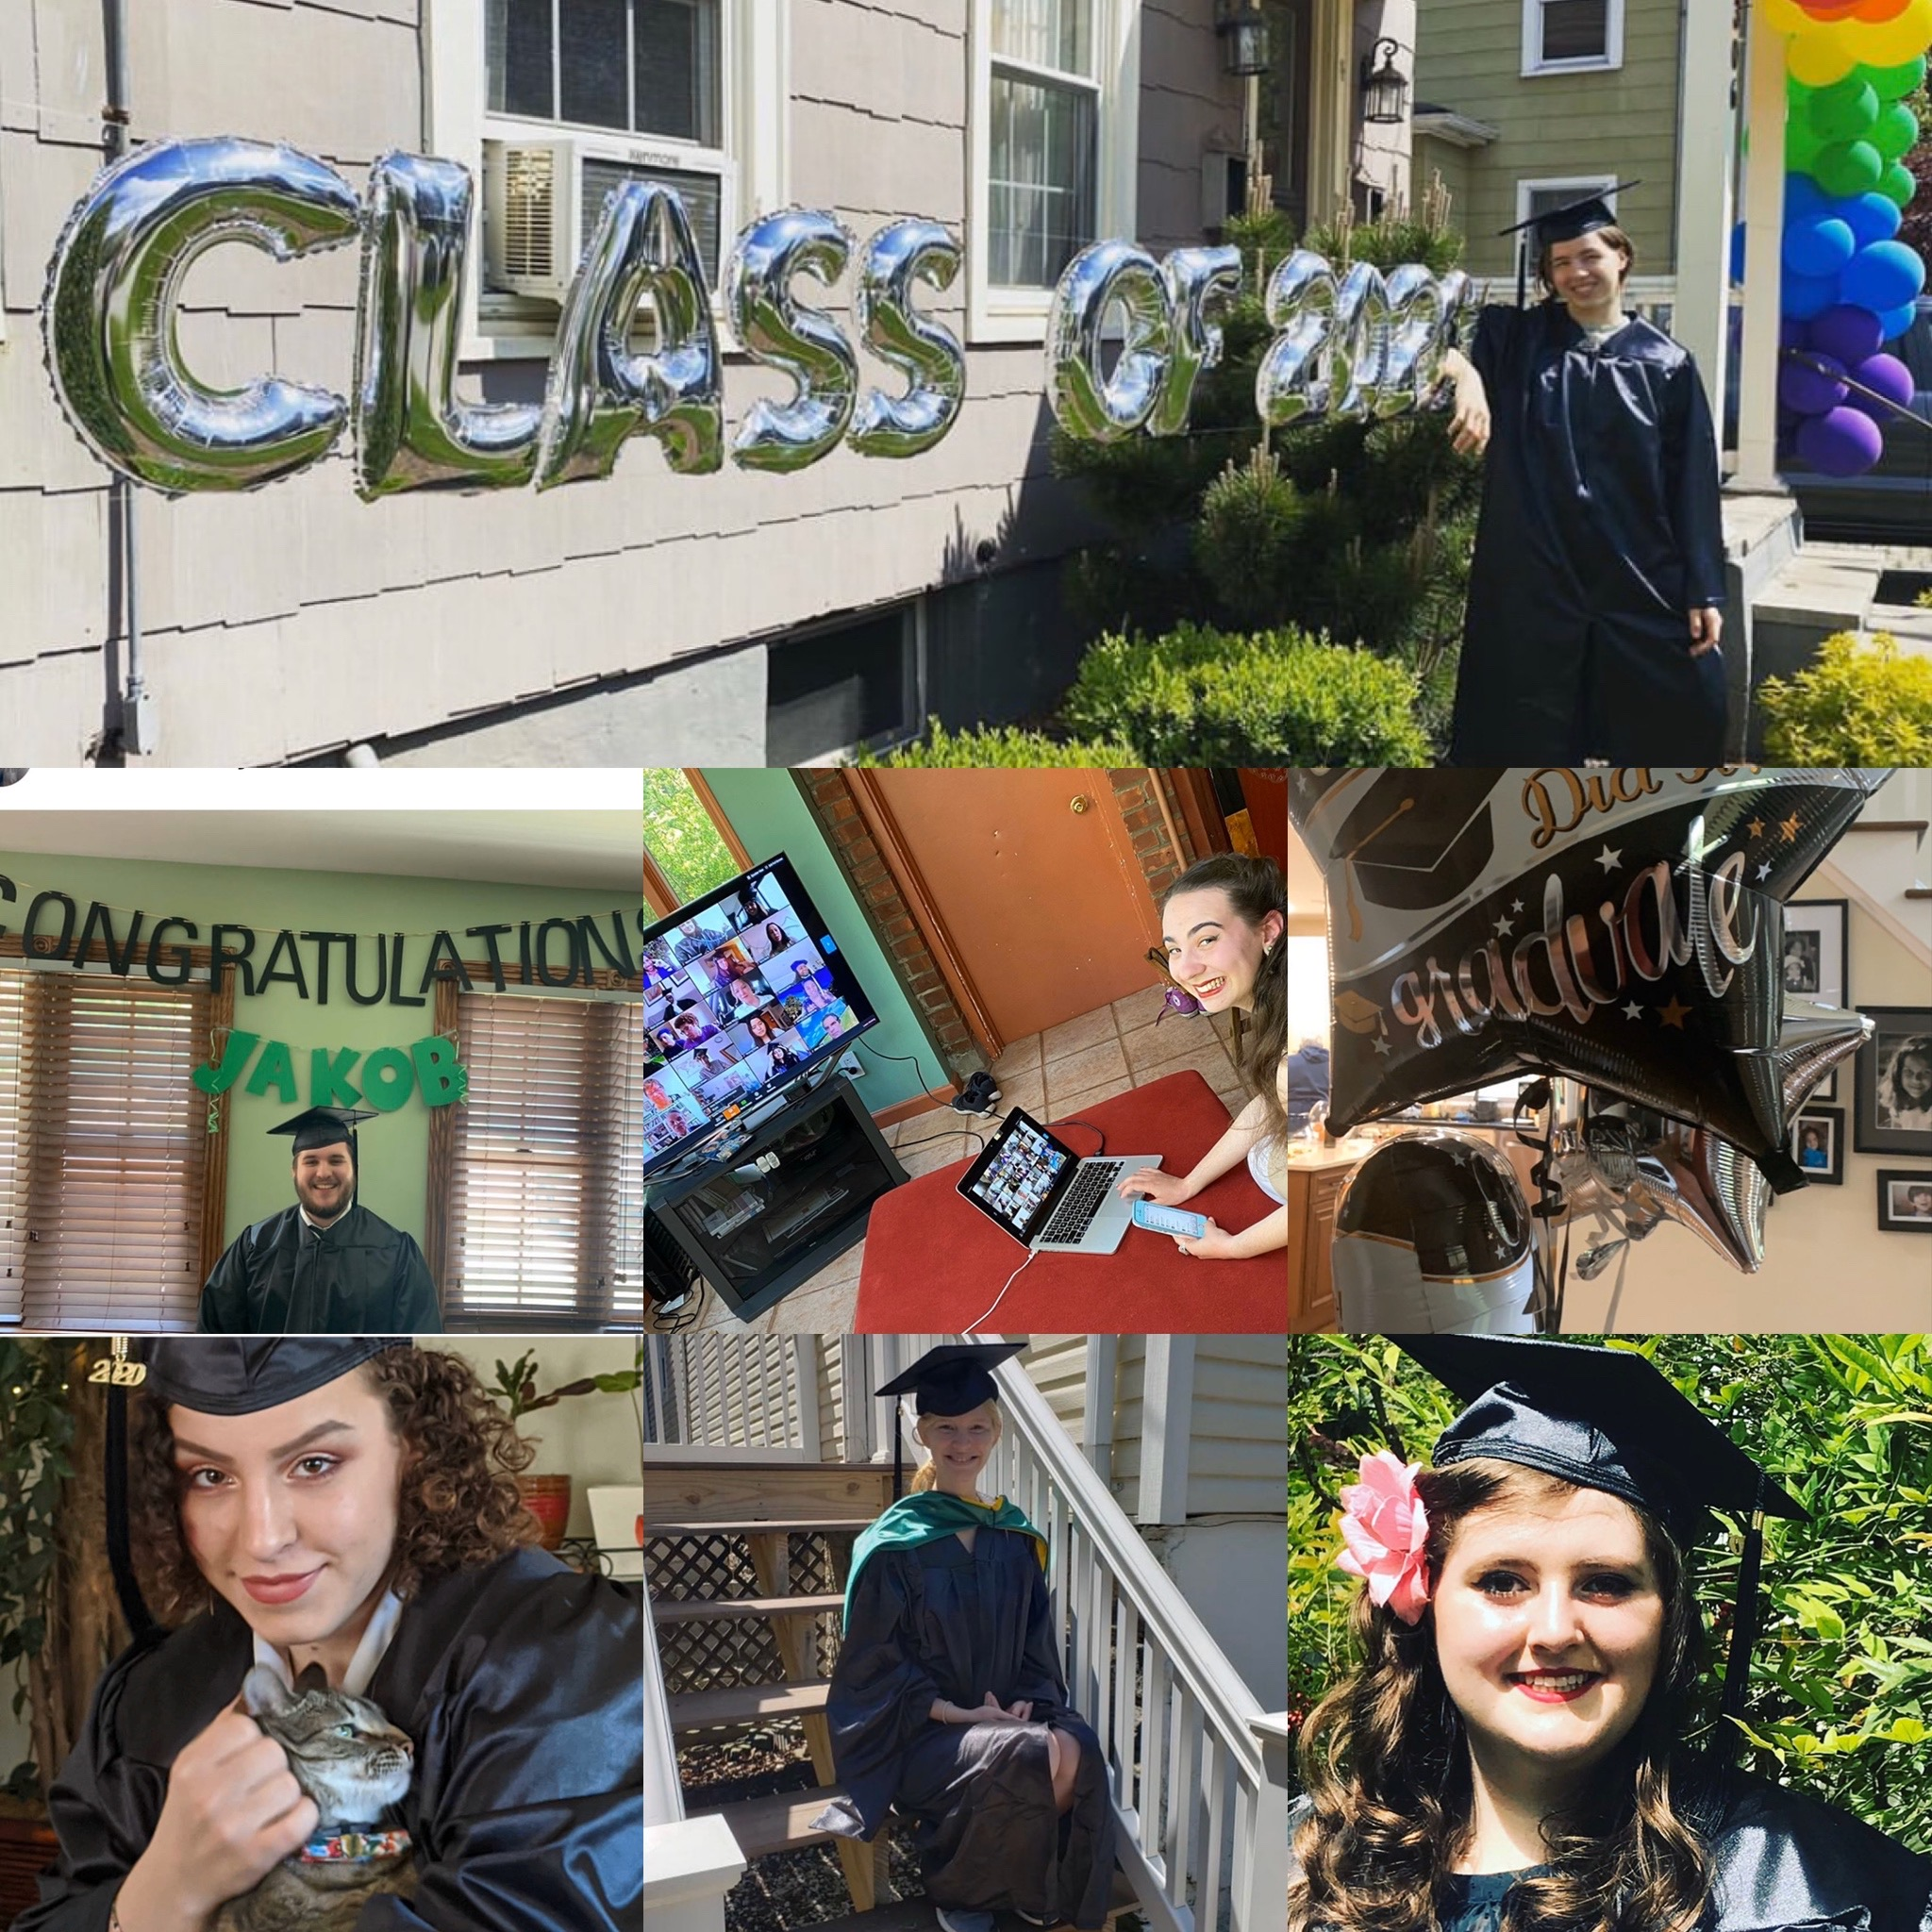 Members of the Sarah Lawrence College class of 2020 in their festive regalia at home celebrating commencement